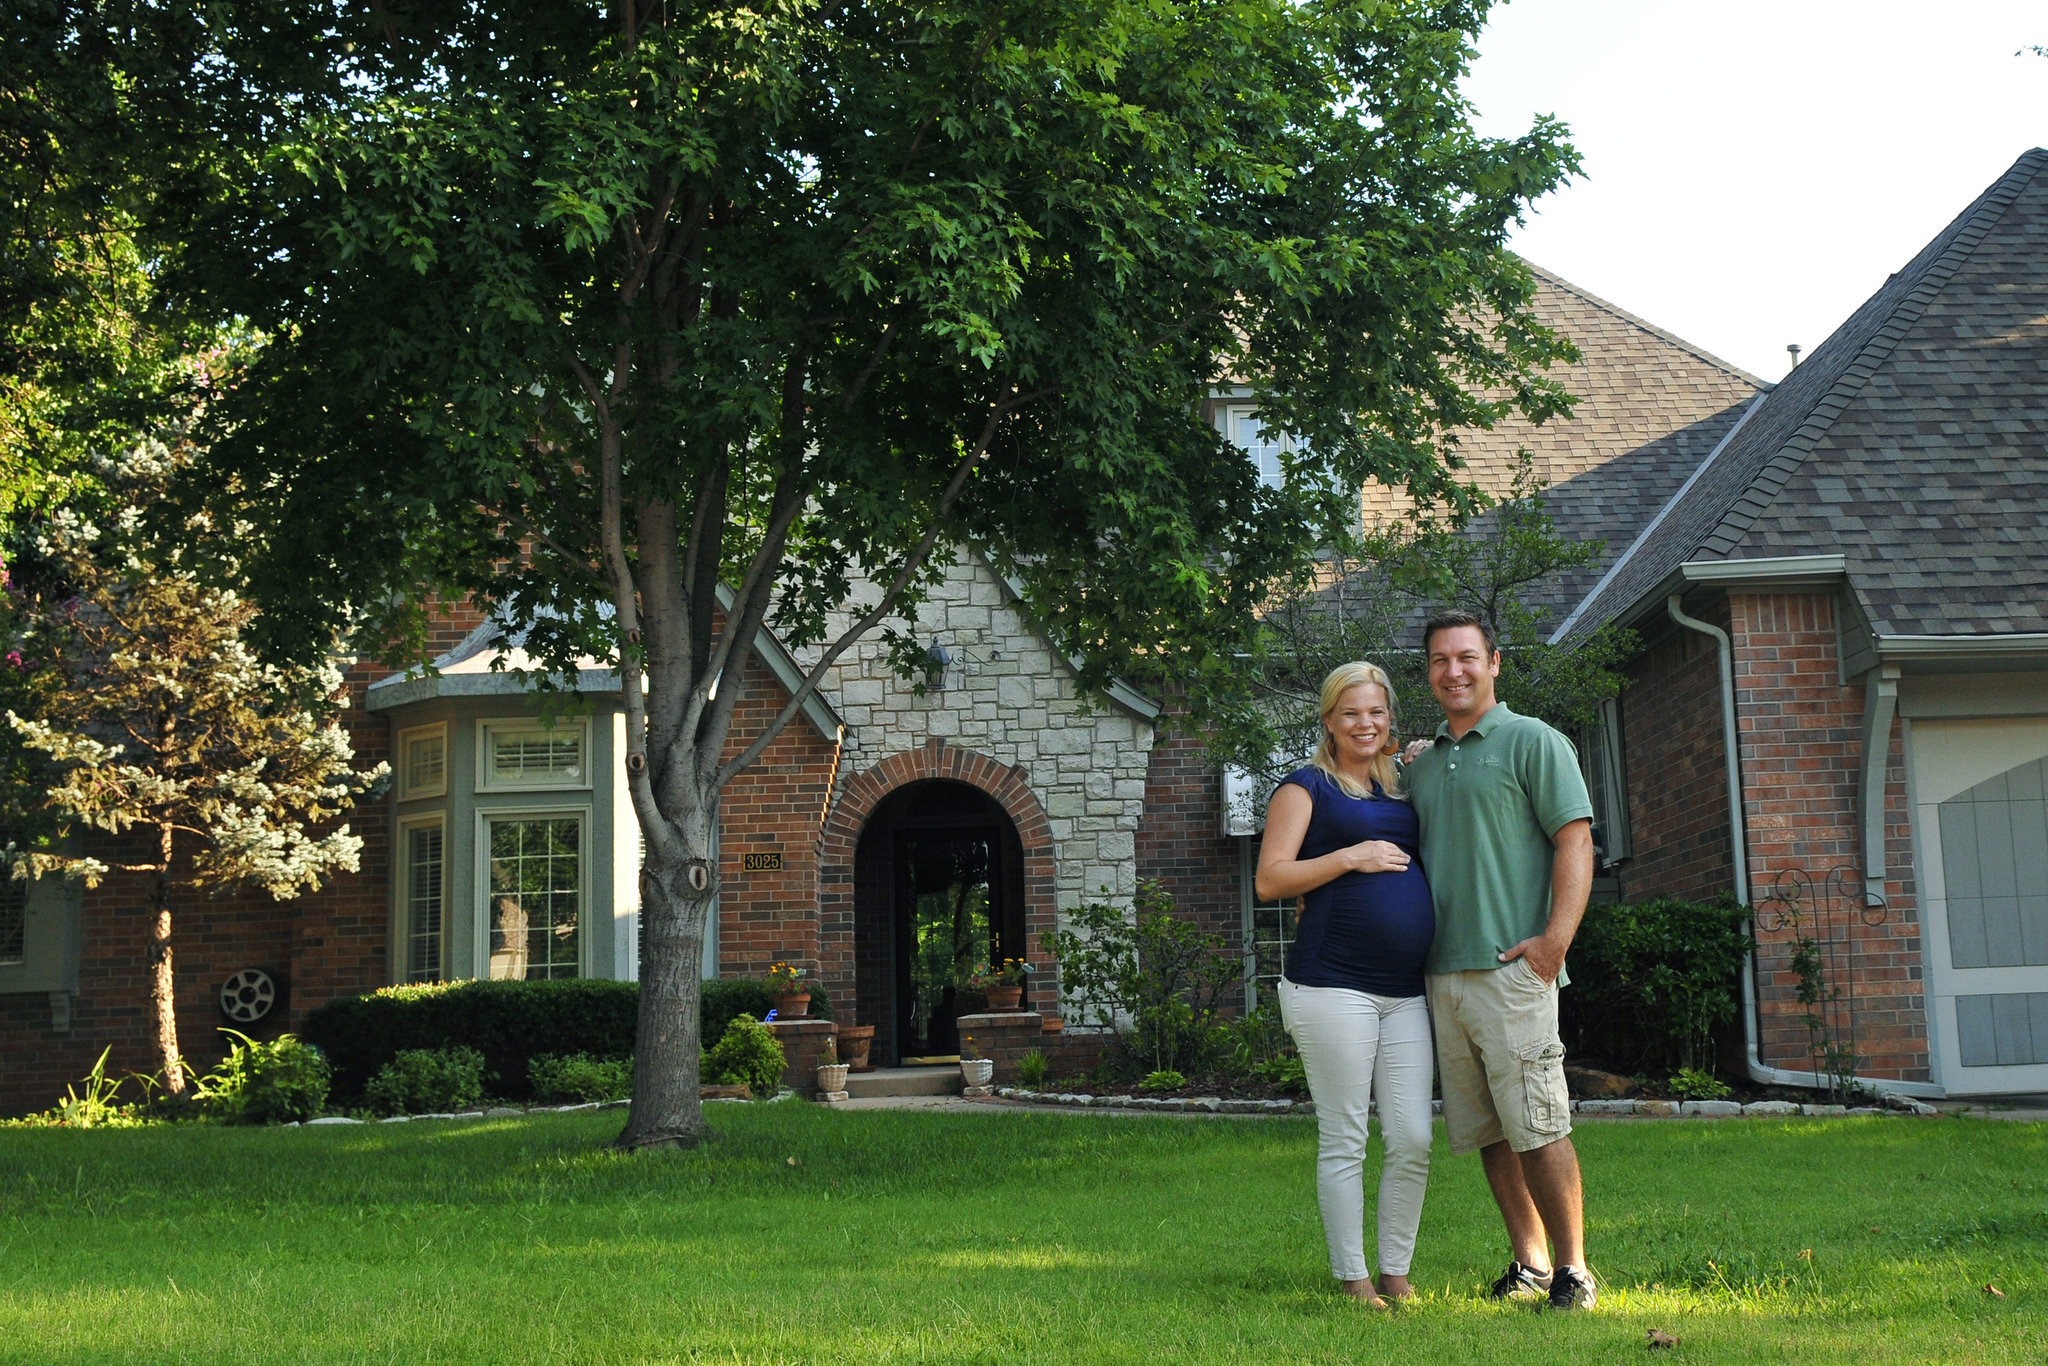 Affordable Housing Draws Middle Class to Inland Cities